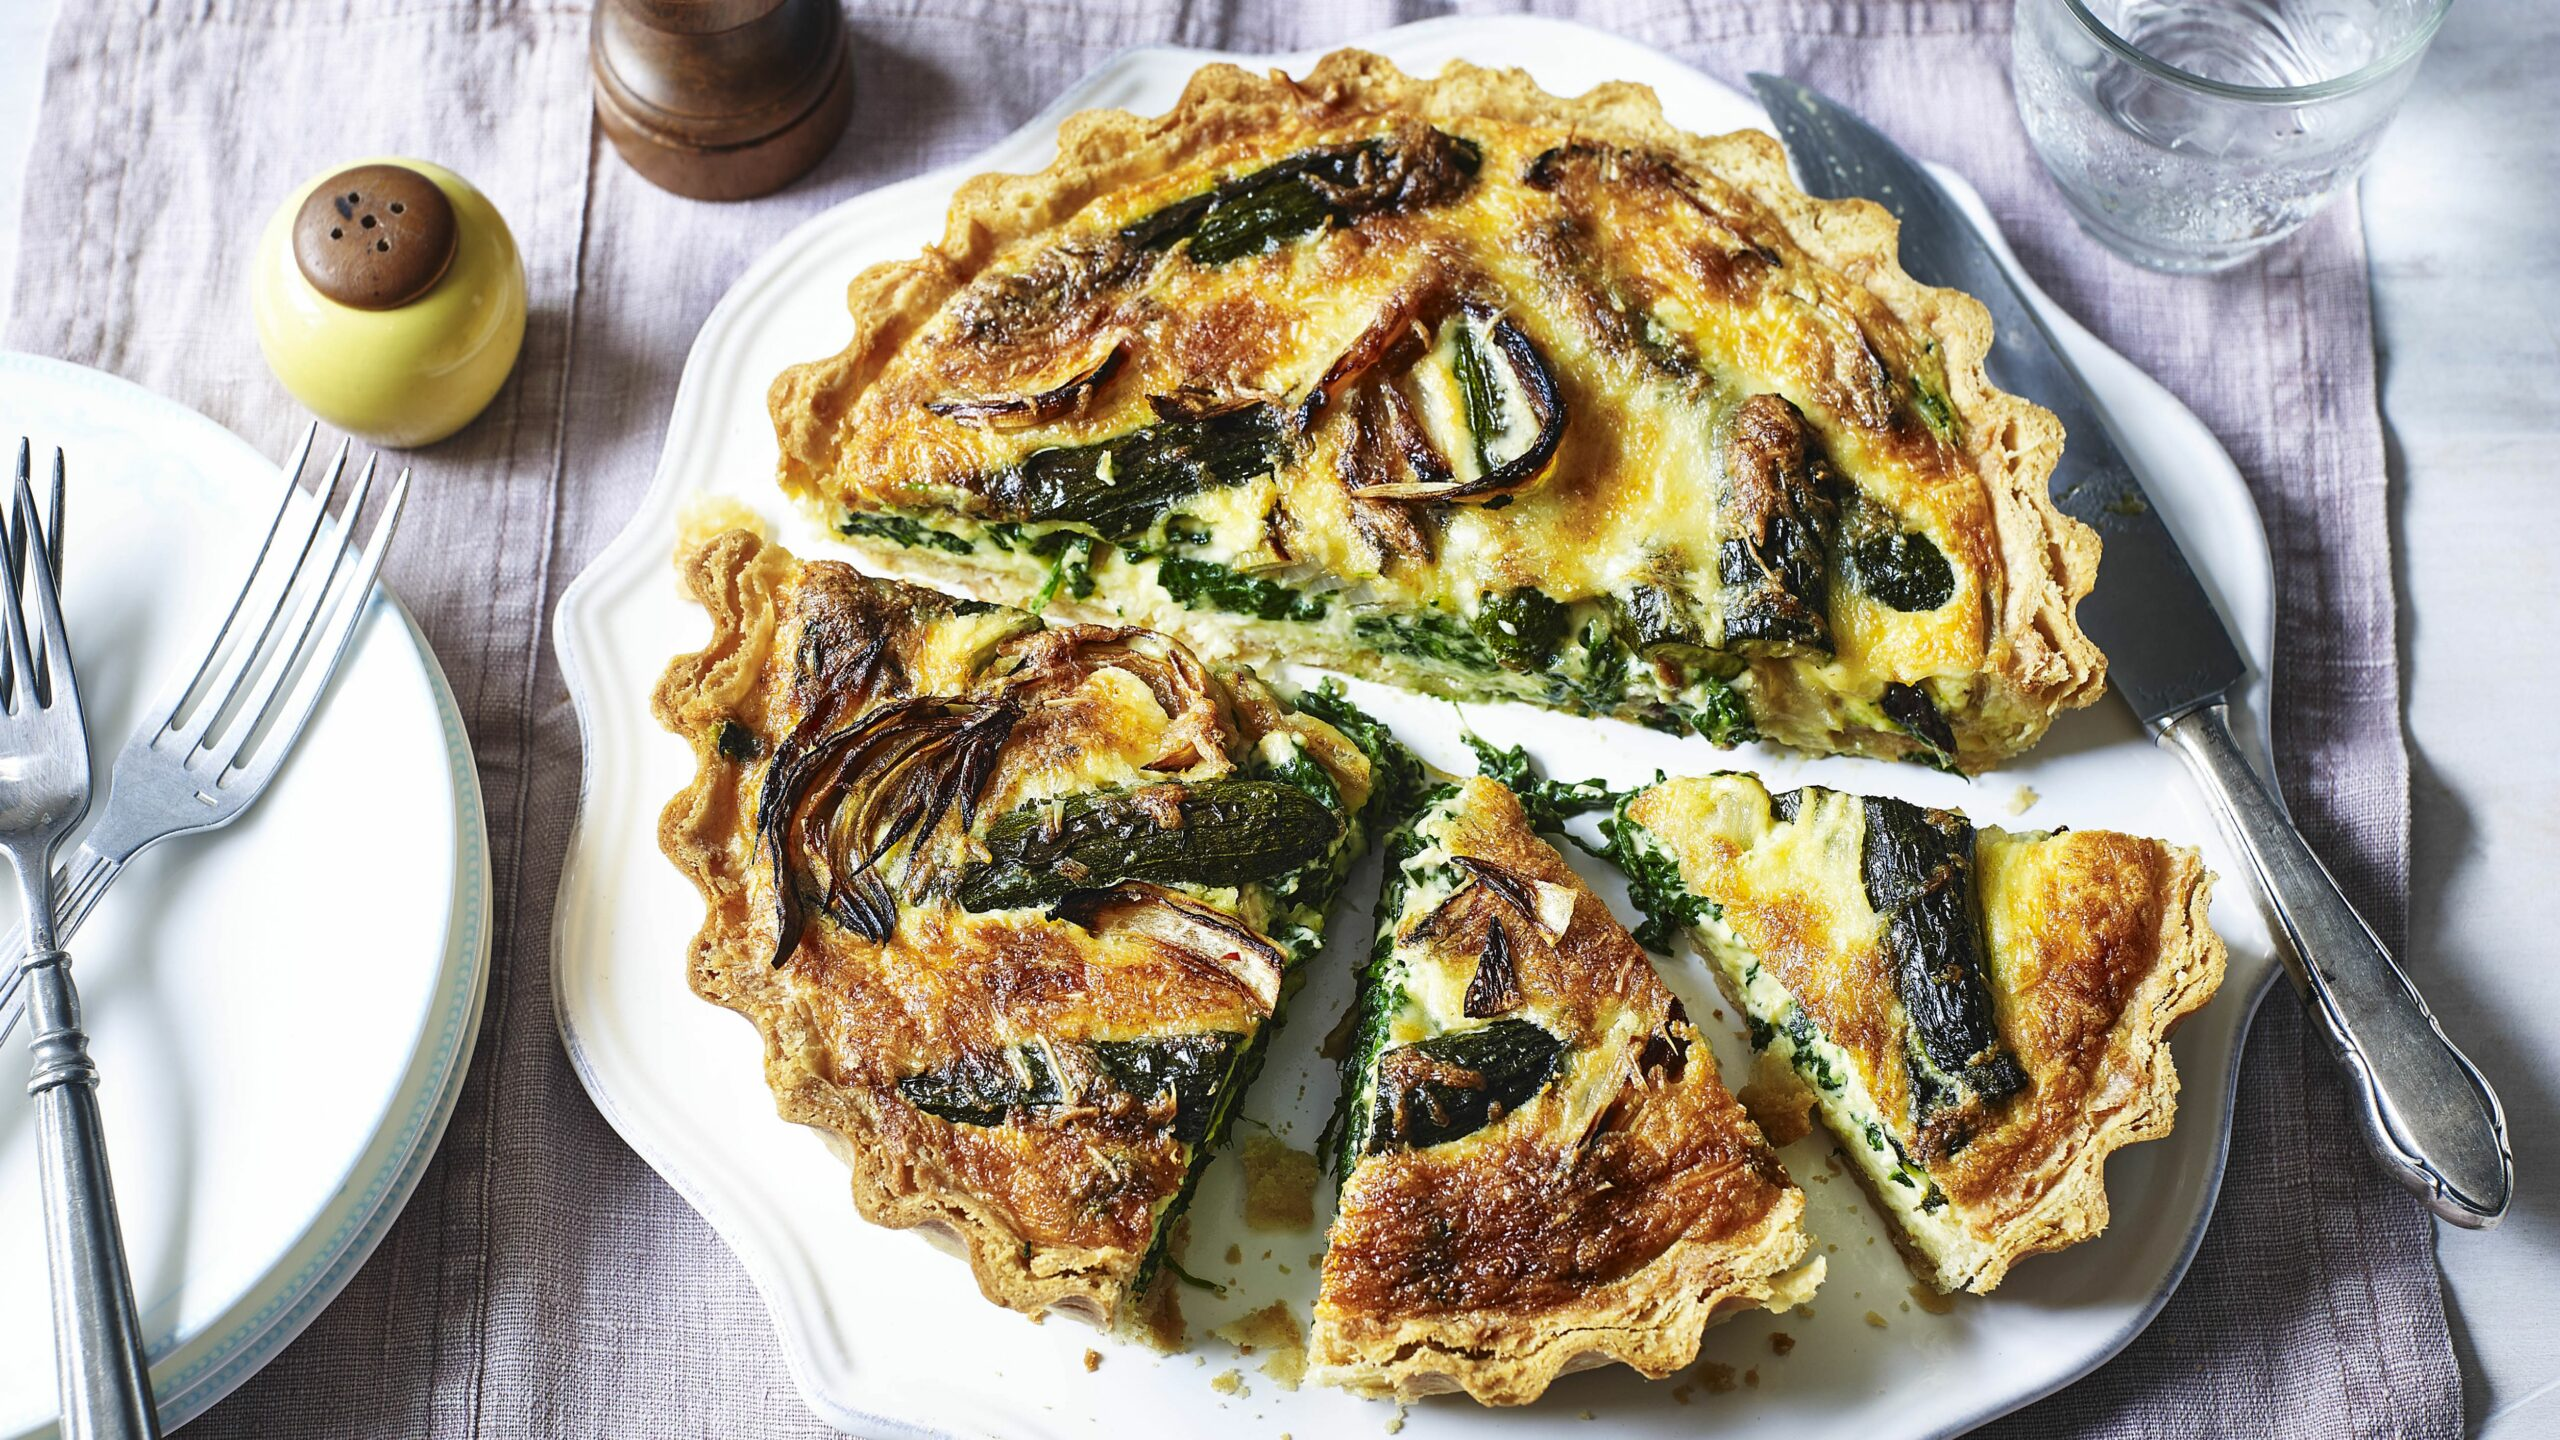 Roasted vegetable quiche - All Recipes Vegetable Quiche